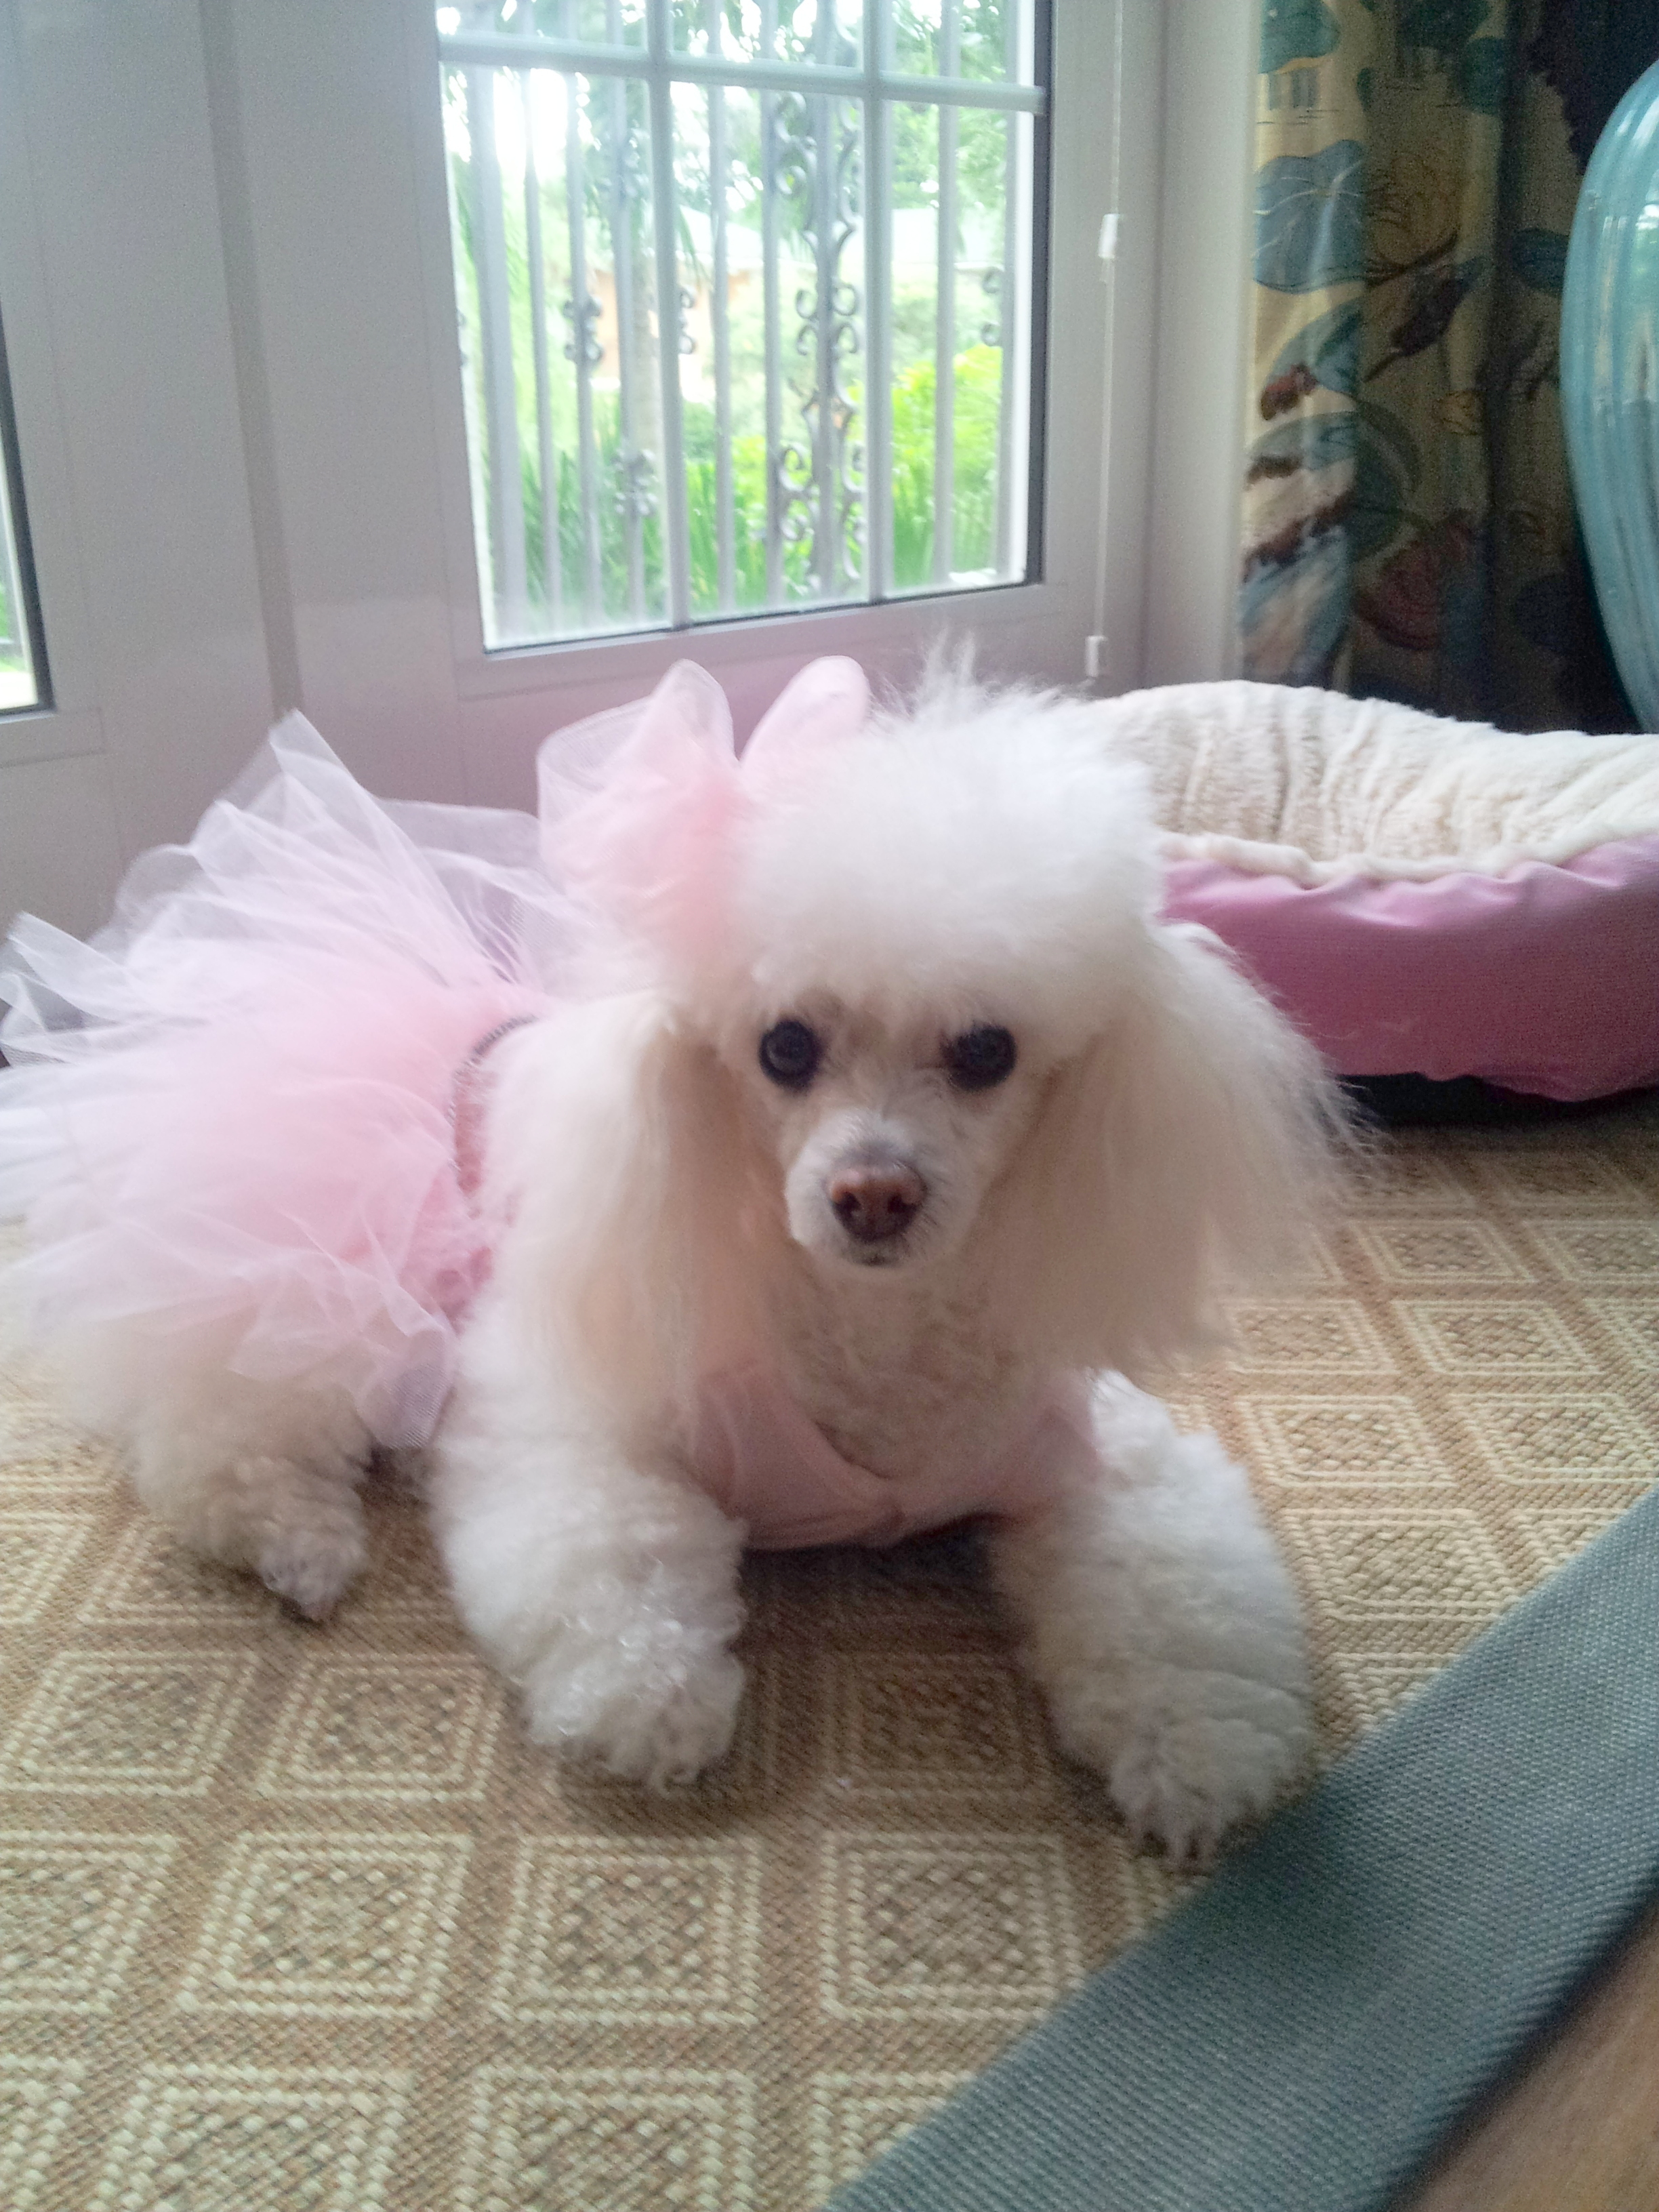 Angelique Pams poodle edited